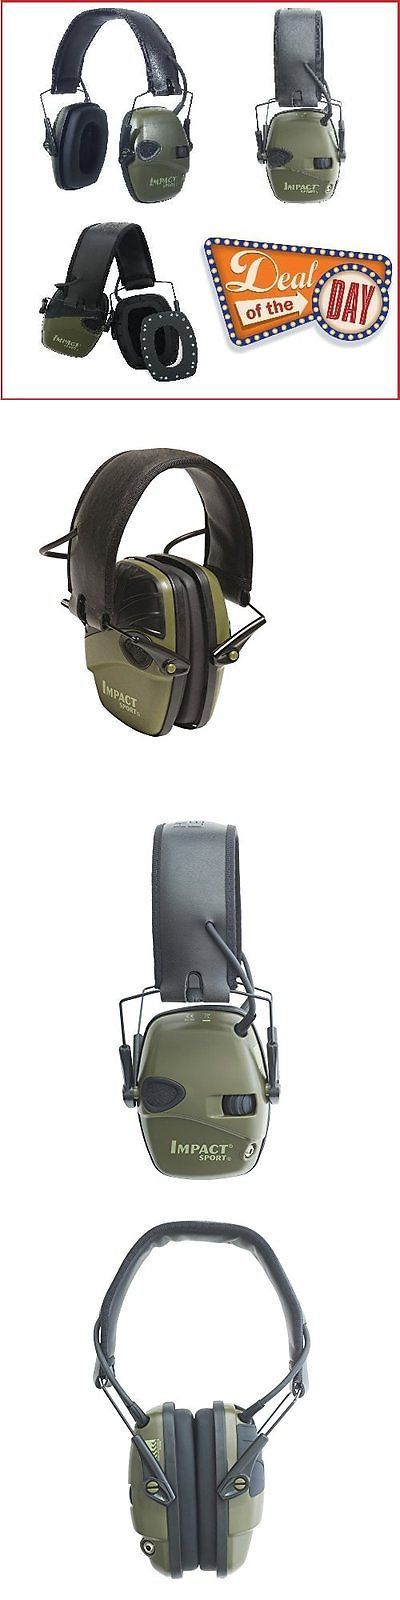 Hearing Protection 73942: Electronic Ear Muffs Shooting Protection Noise Cancelling Hearing Mp3 Headphones -> BUY IT NOW ONLY: $215.76 on eBay!